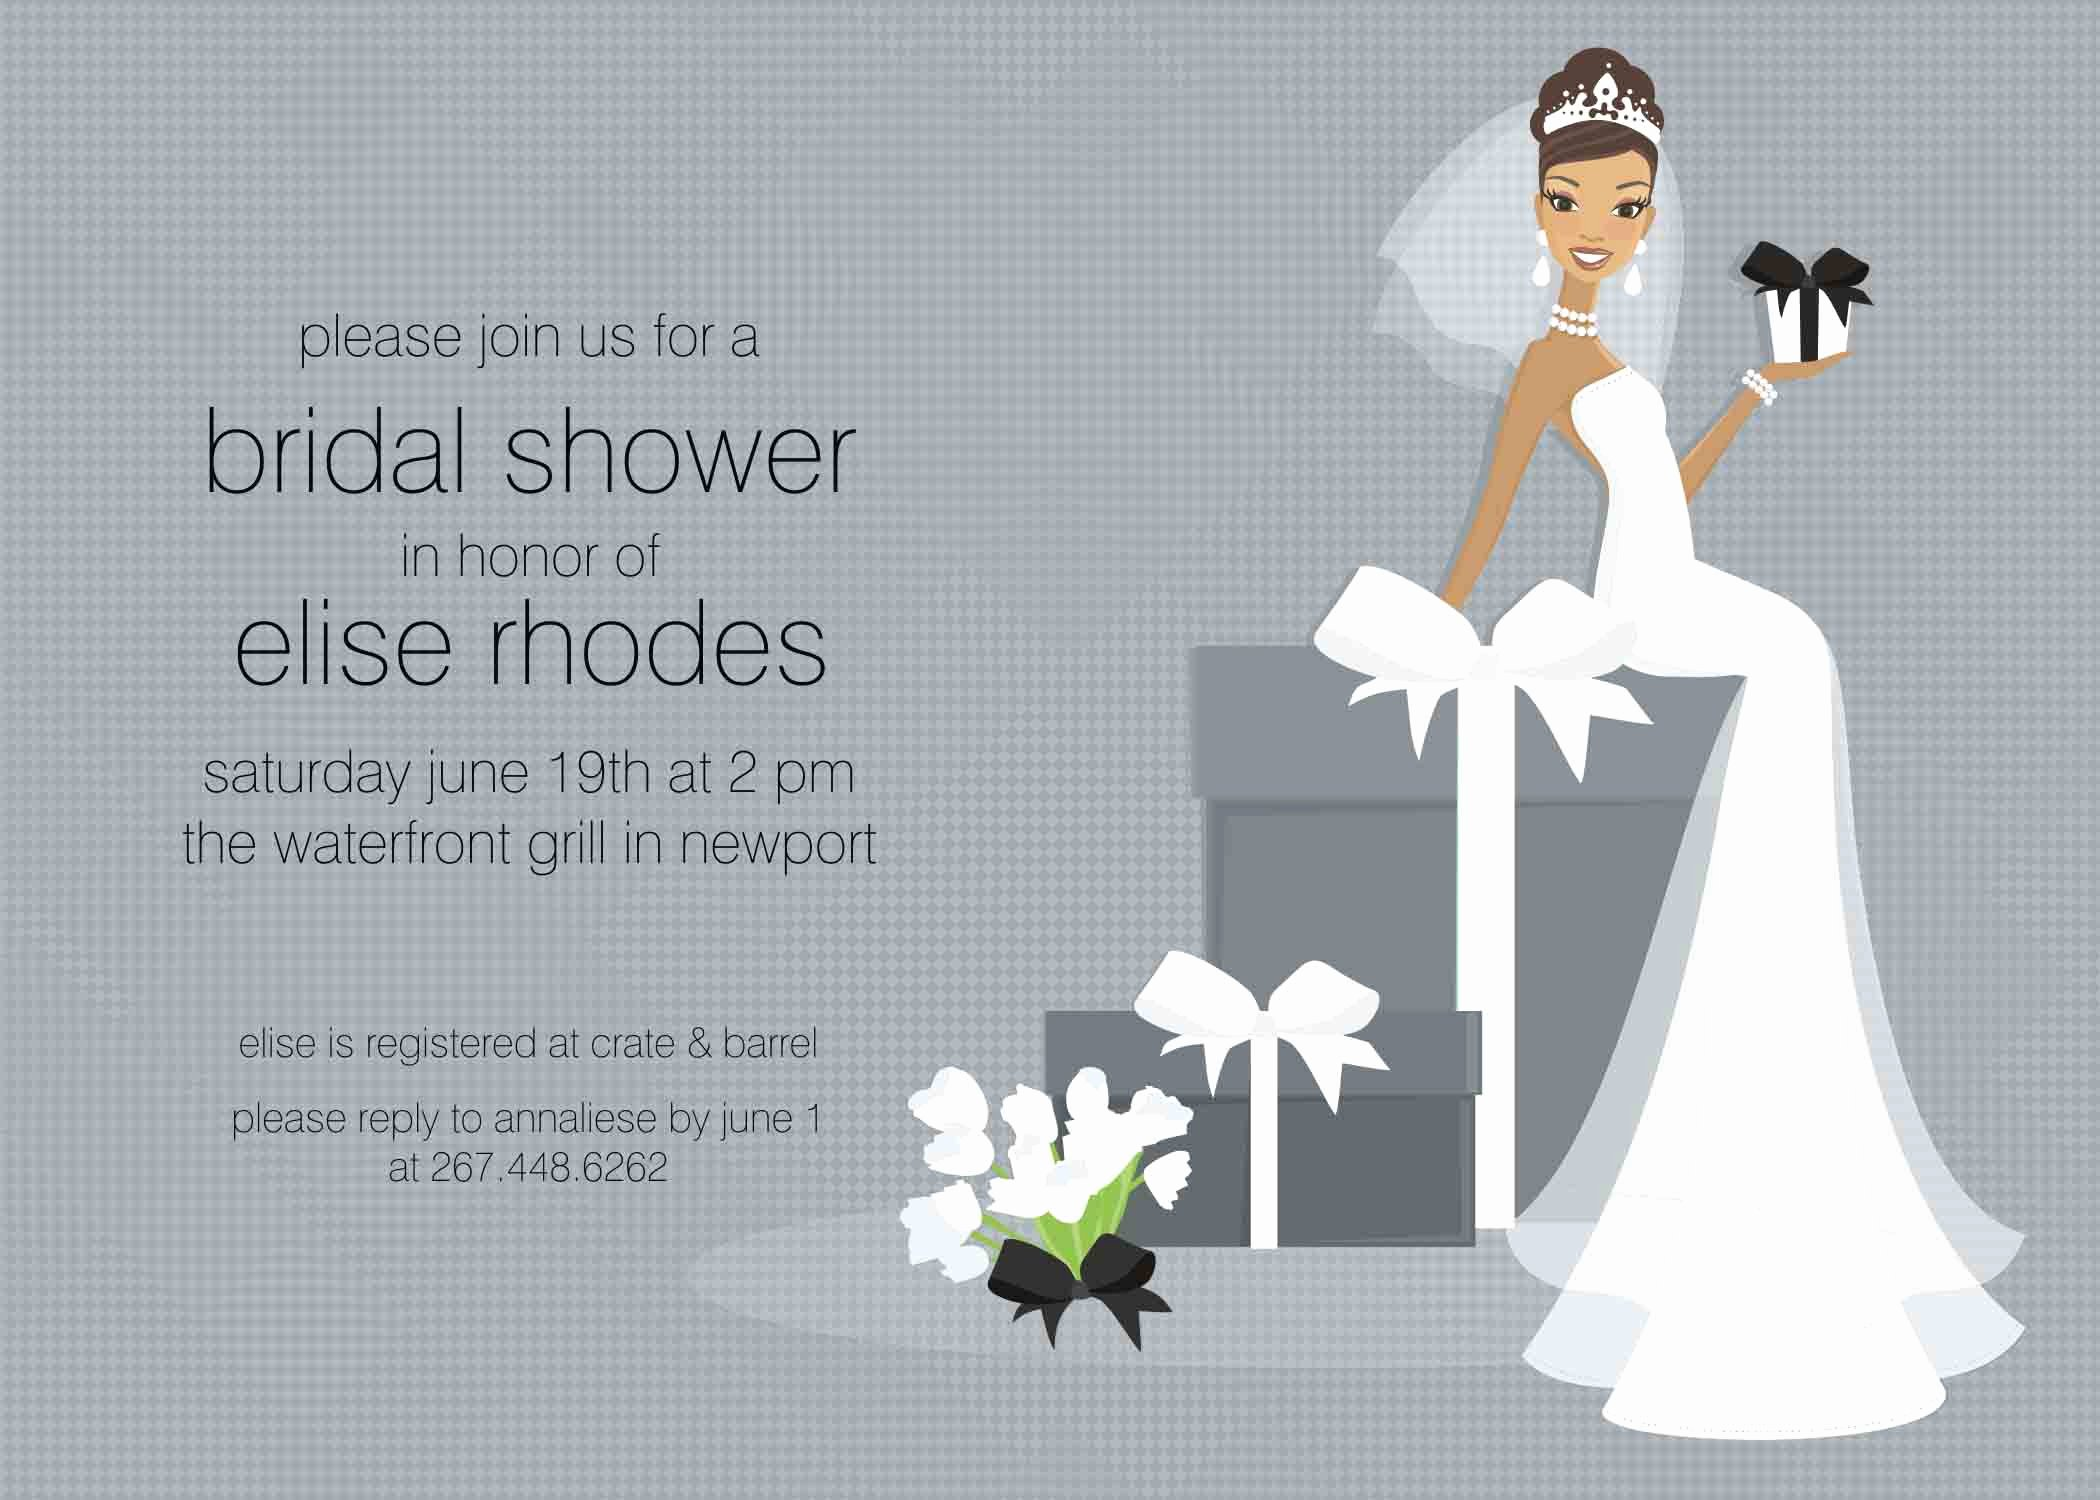 Bridal Shower Invitation Template New Bridal Shower Invitation Templates Beepmunk